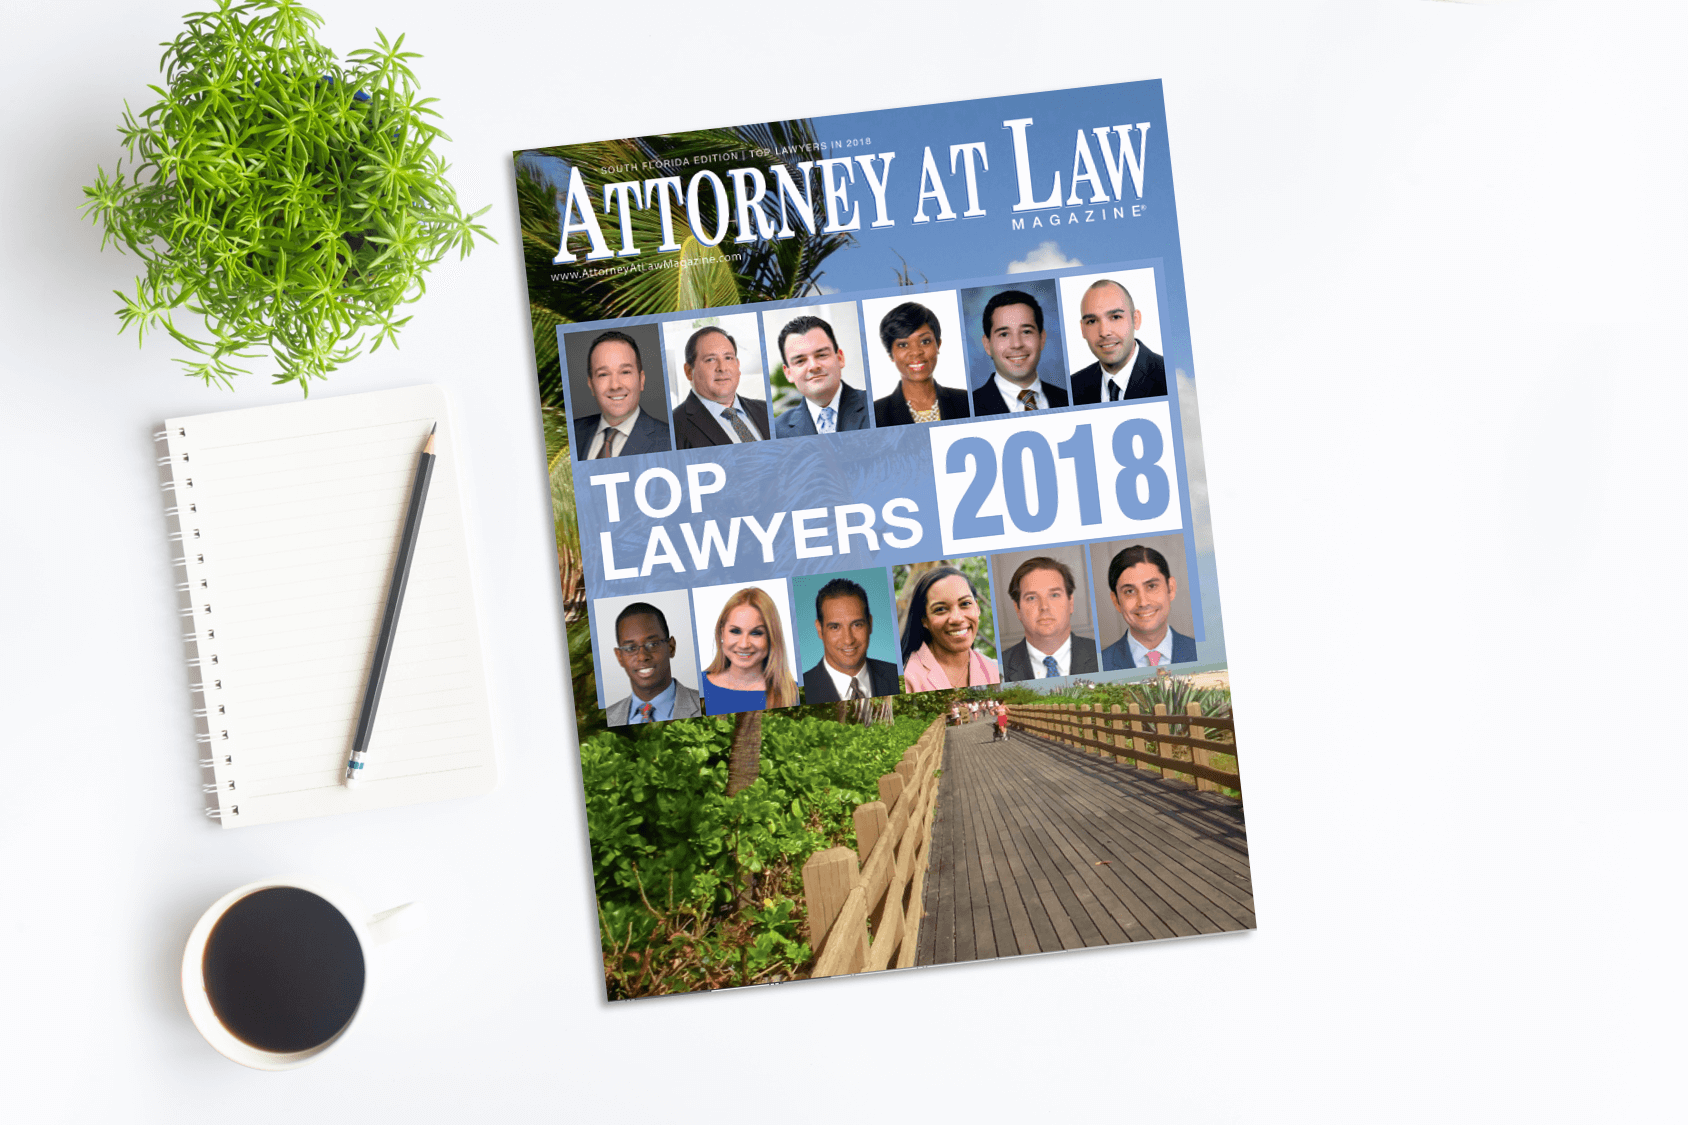 Attorney at Law Magazine Phoenix Vol. 11 No. 1